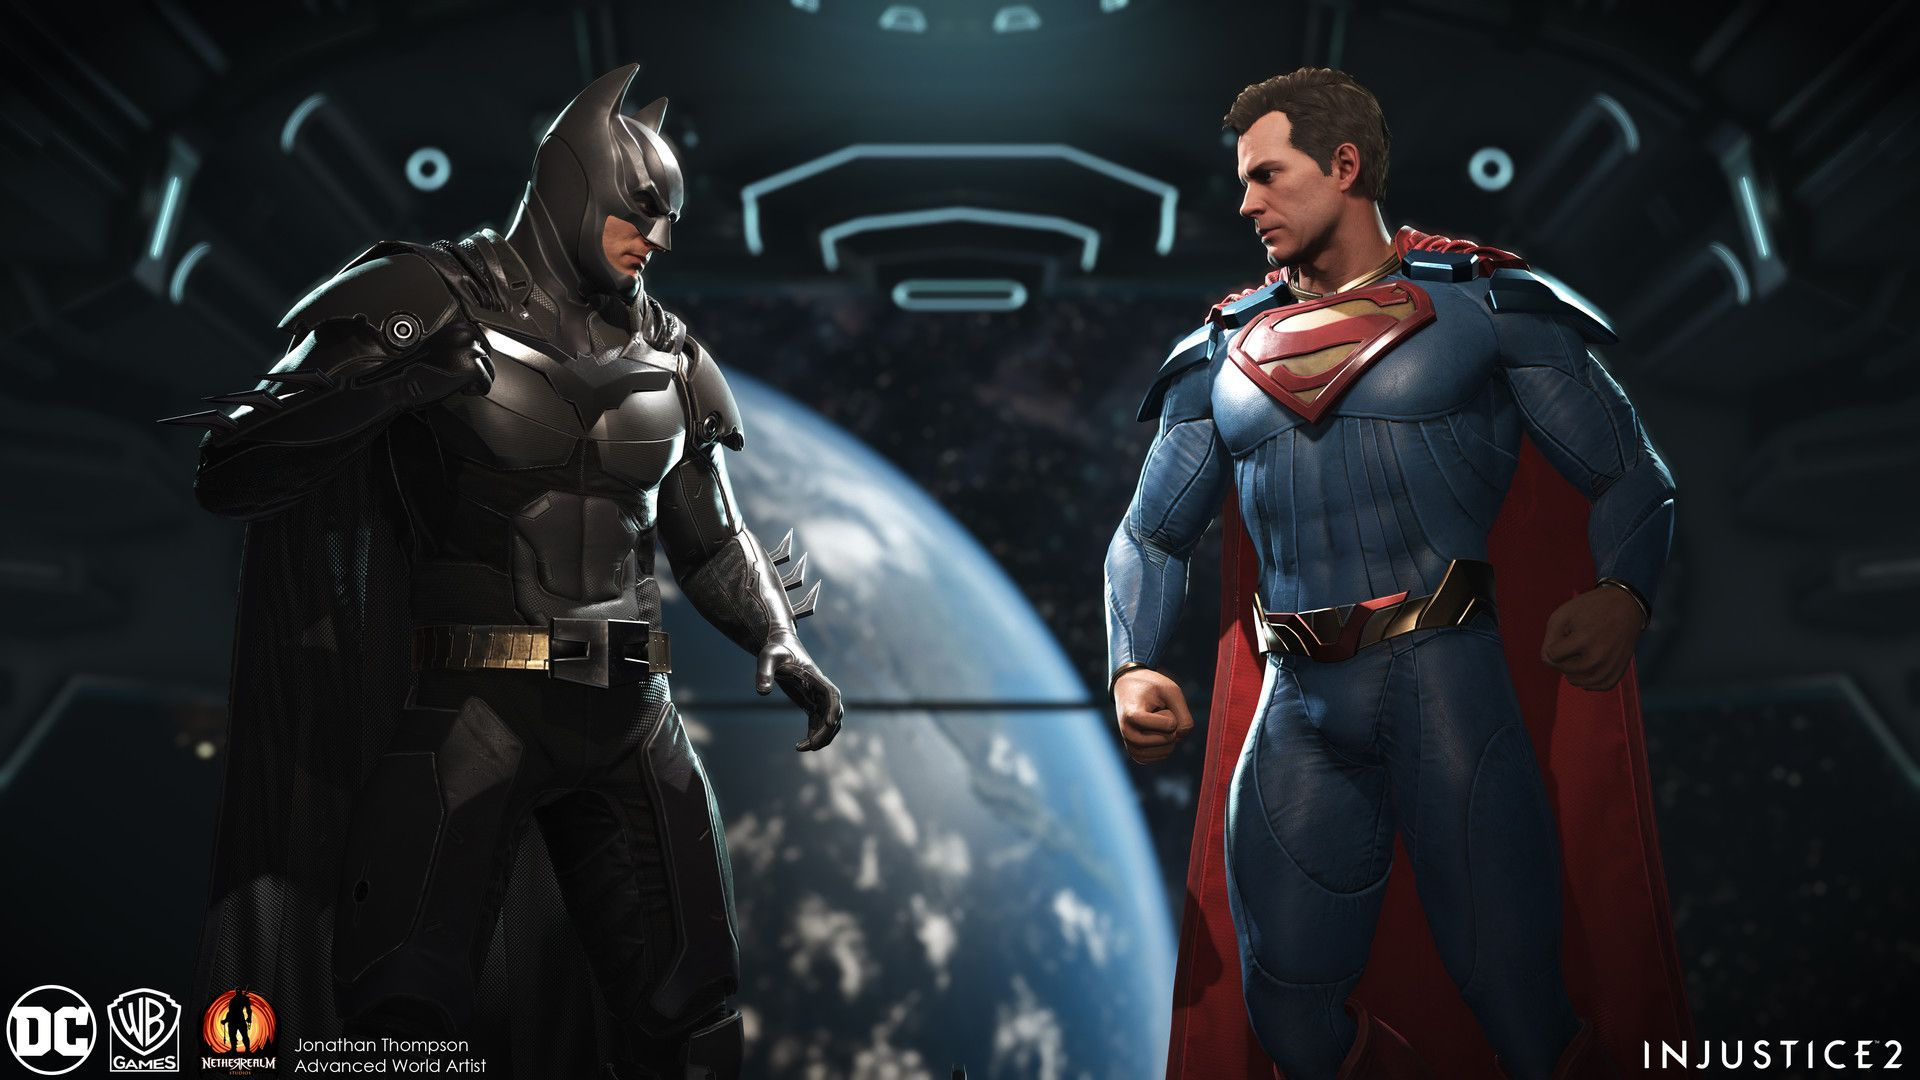 The Art Of Injustice 2 Injustice 2 Superman Injustice 2 Characters Injustice 2